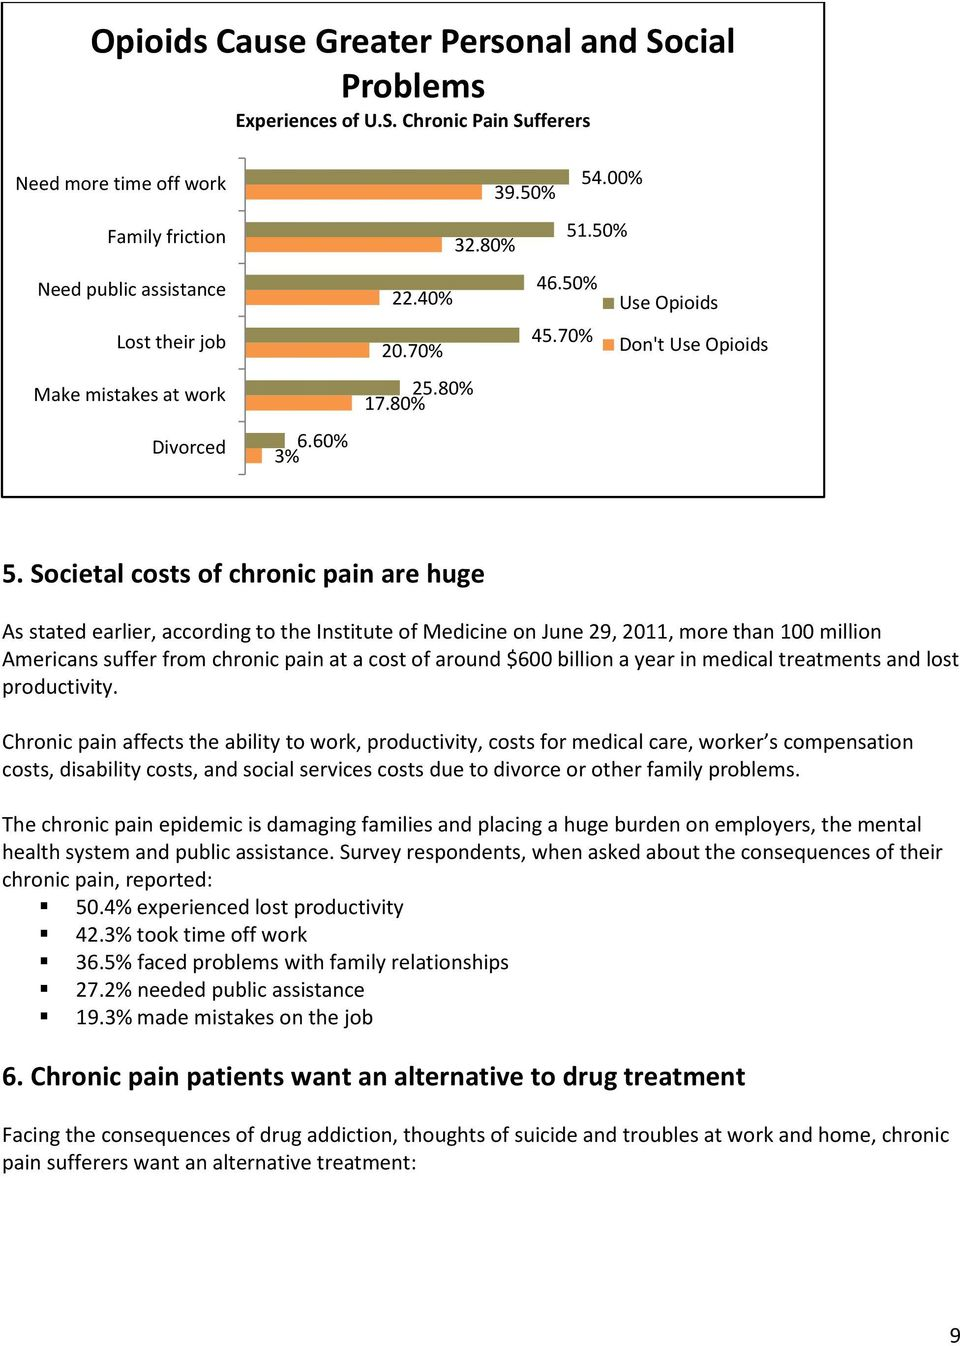 Societal costs of chronic pain are huge As stated earlier, according to the Institute of Medicine on June 29, 2011, more than 100 million Americans suffer from chronic pain at a cost of around $600